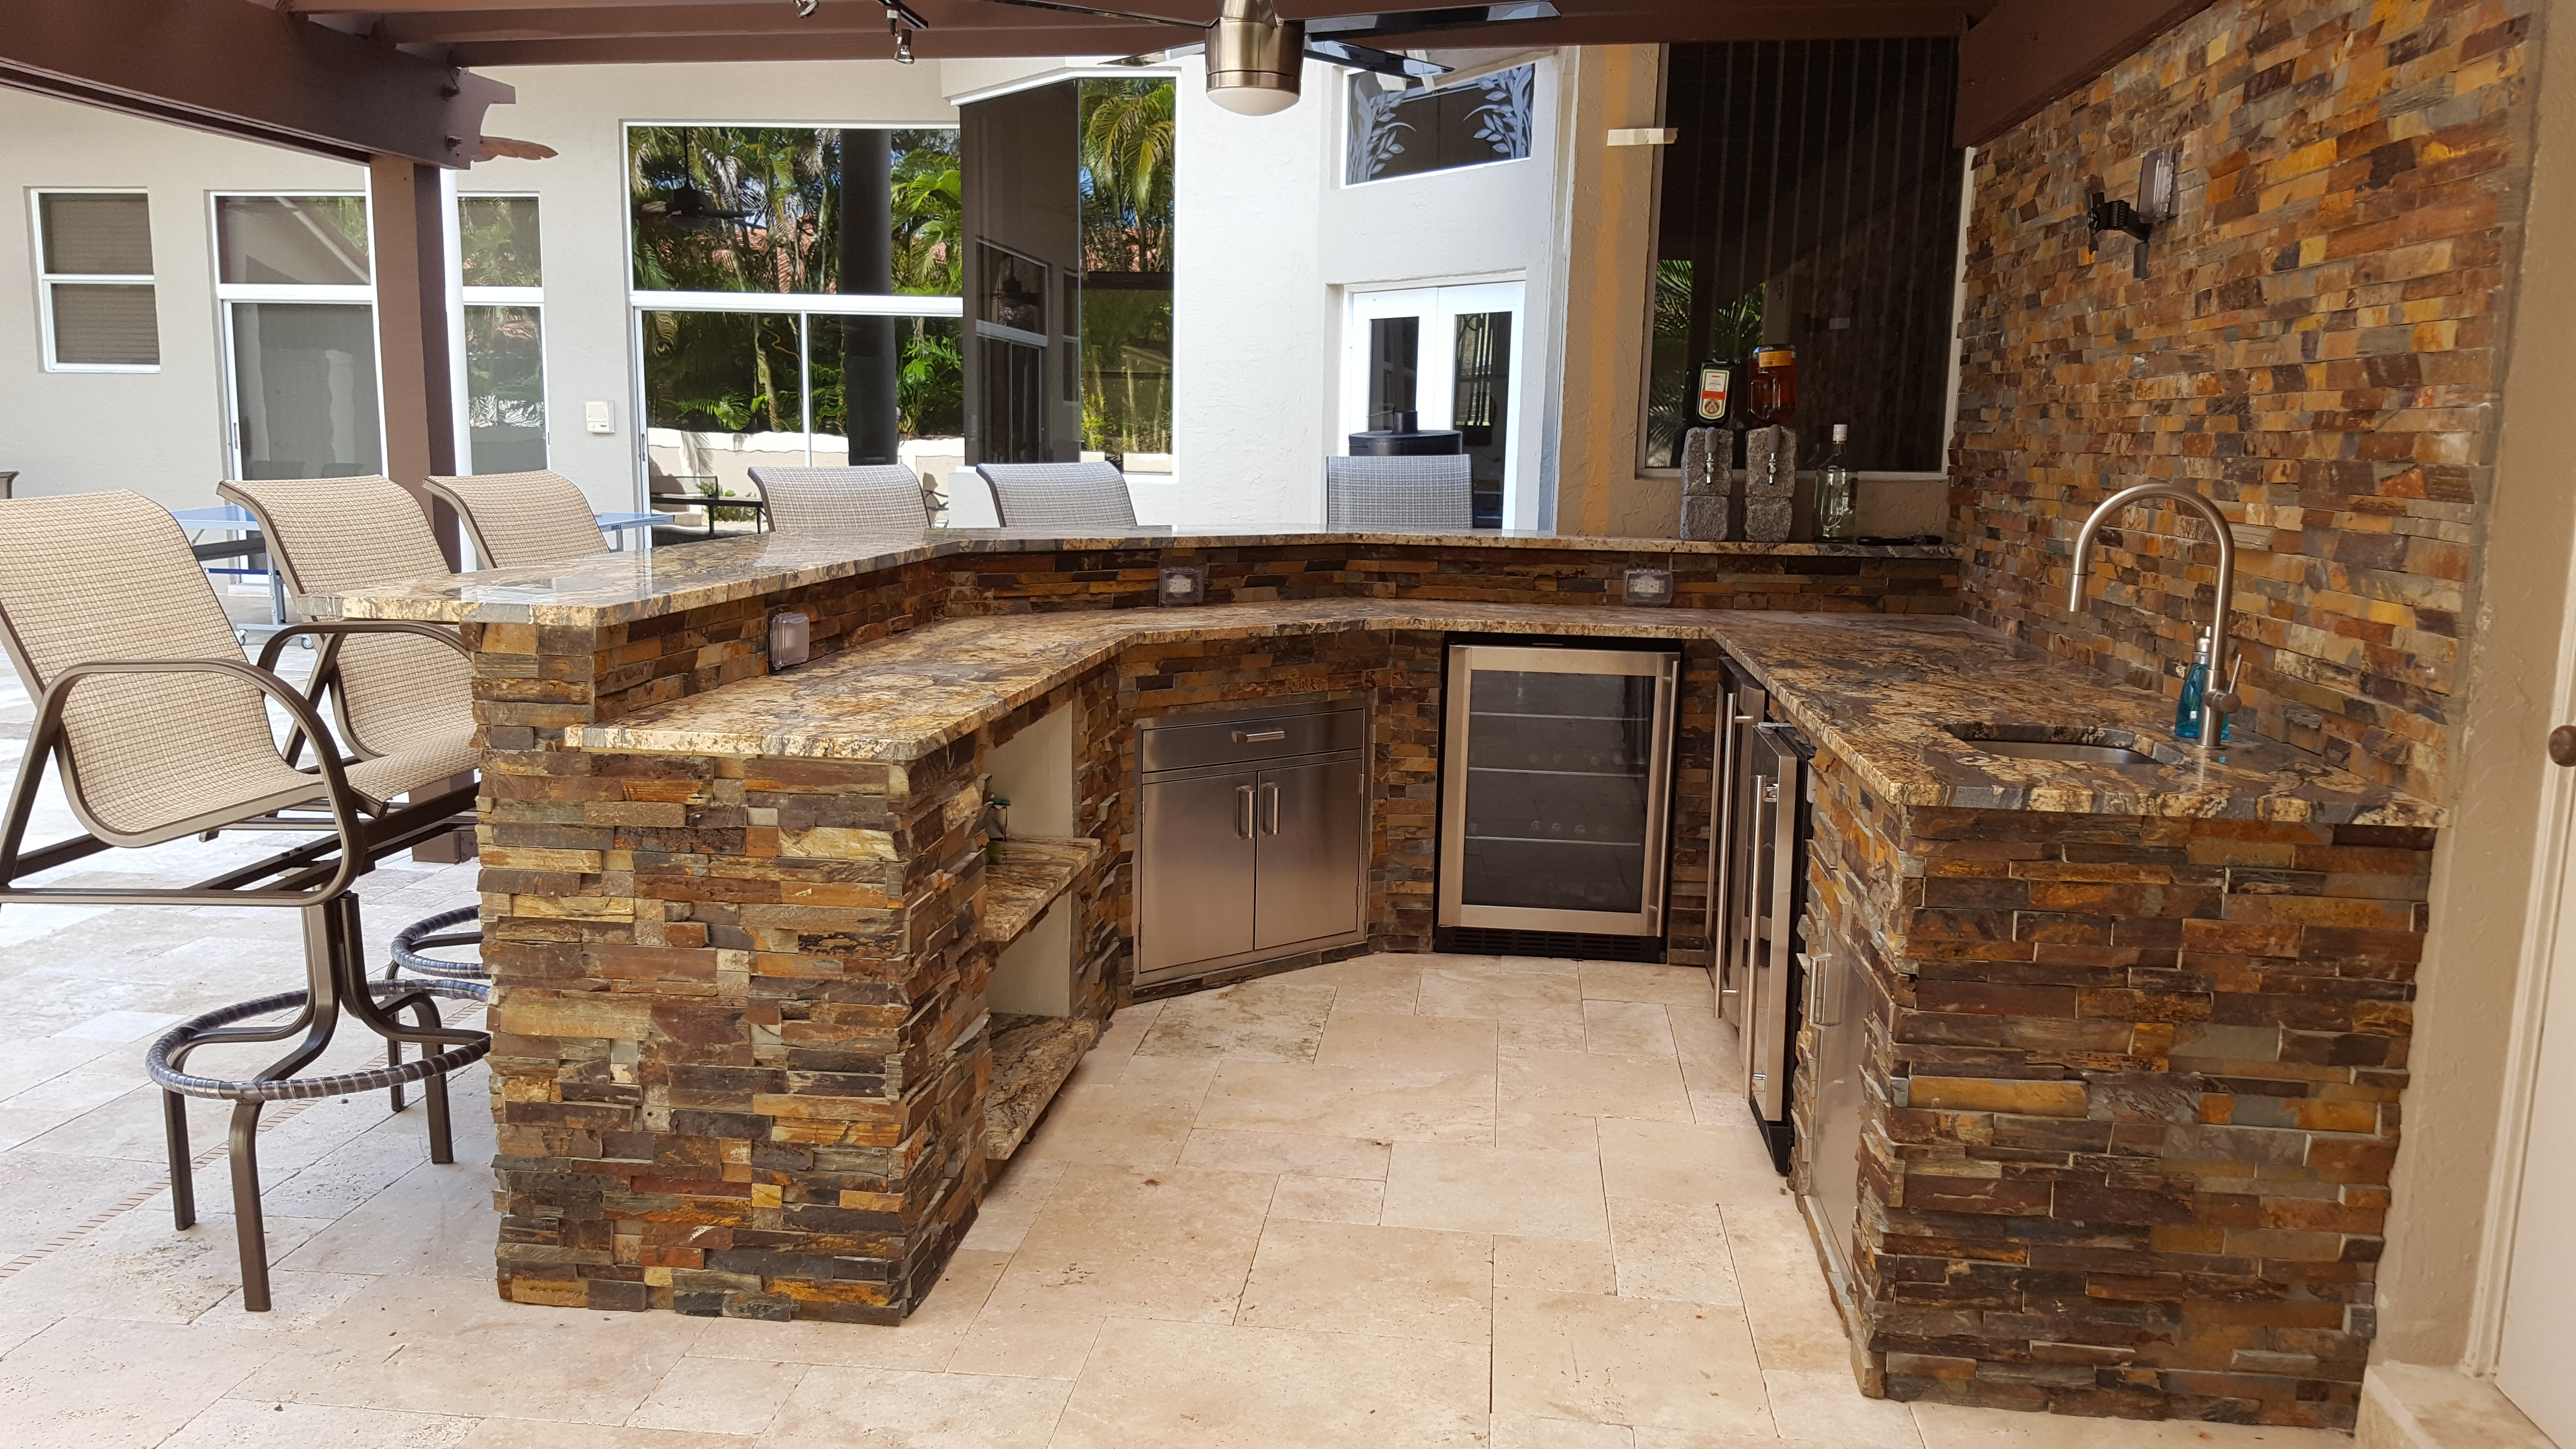 Coral Springs Outdoor Living Areas, Parkland Outdoor Living Areas, Boca Outdoor Living Areas, North Miami Beach Outdoor Living Areas, Aventura Outdoor Living Areas